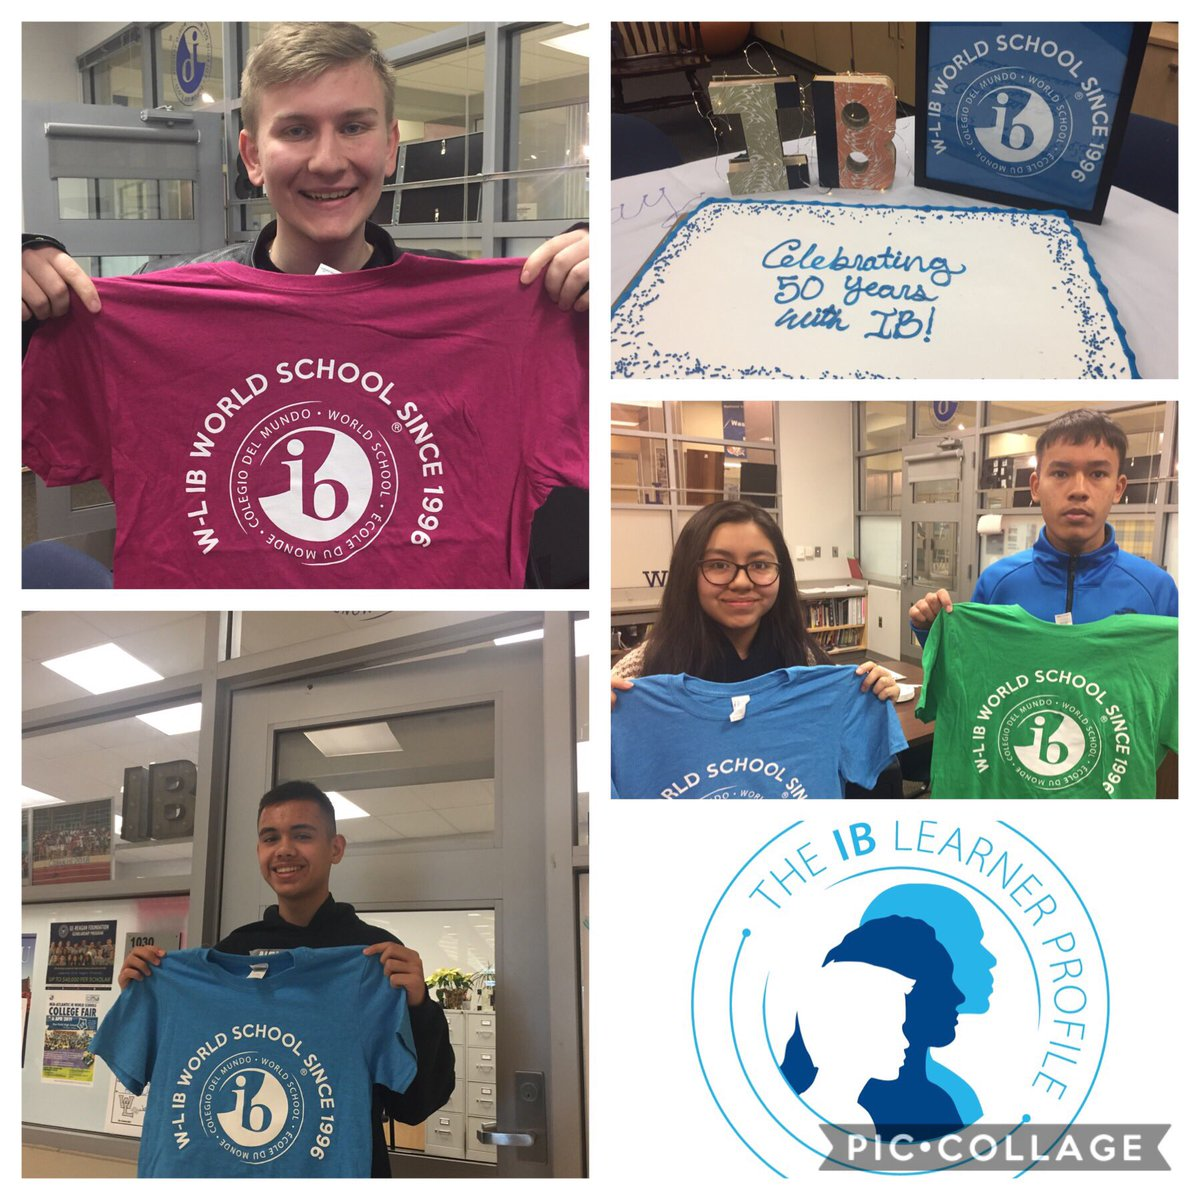 Happy to highlight these WLHS students exemplifying <a target='_blank' href='http://search.twitter.com/search?q=IBLearnerProfile'><a target='_blank' href='https://twitter.com/hashtag/IBLearnerProfile?src=hash'>#IBLearnerProfile</a></a> traits!! <a target='_blank' href='http://twitter.com/GeneralsPride'>@GeneralsPride</a> <a target='_blank' href='http://twitter.com/WLHSPrincipal'>@WLHSPrincipal</a> <a target='_blank' href='https://t.co/bOw3MSGQ2H'>https://t.co/bOw3MSGQ2H</a>